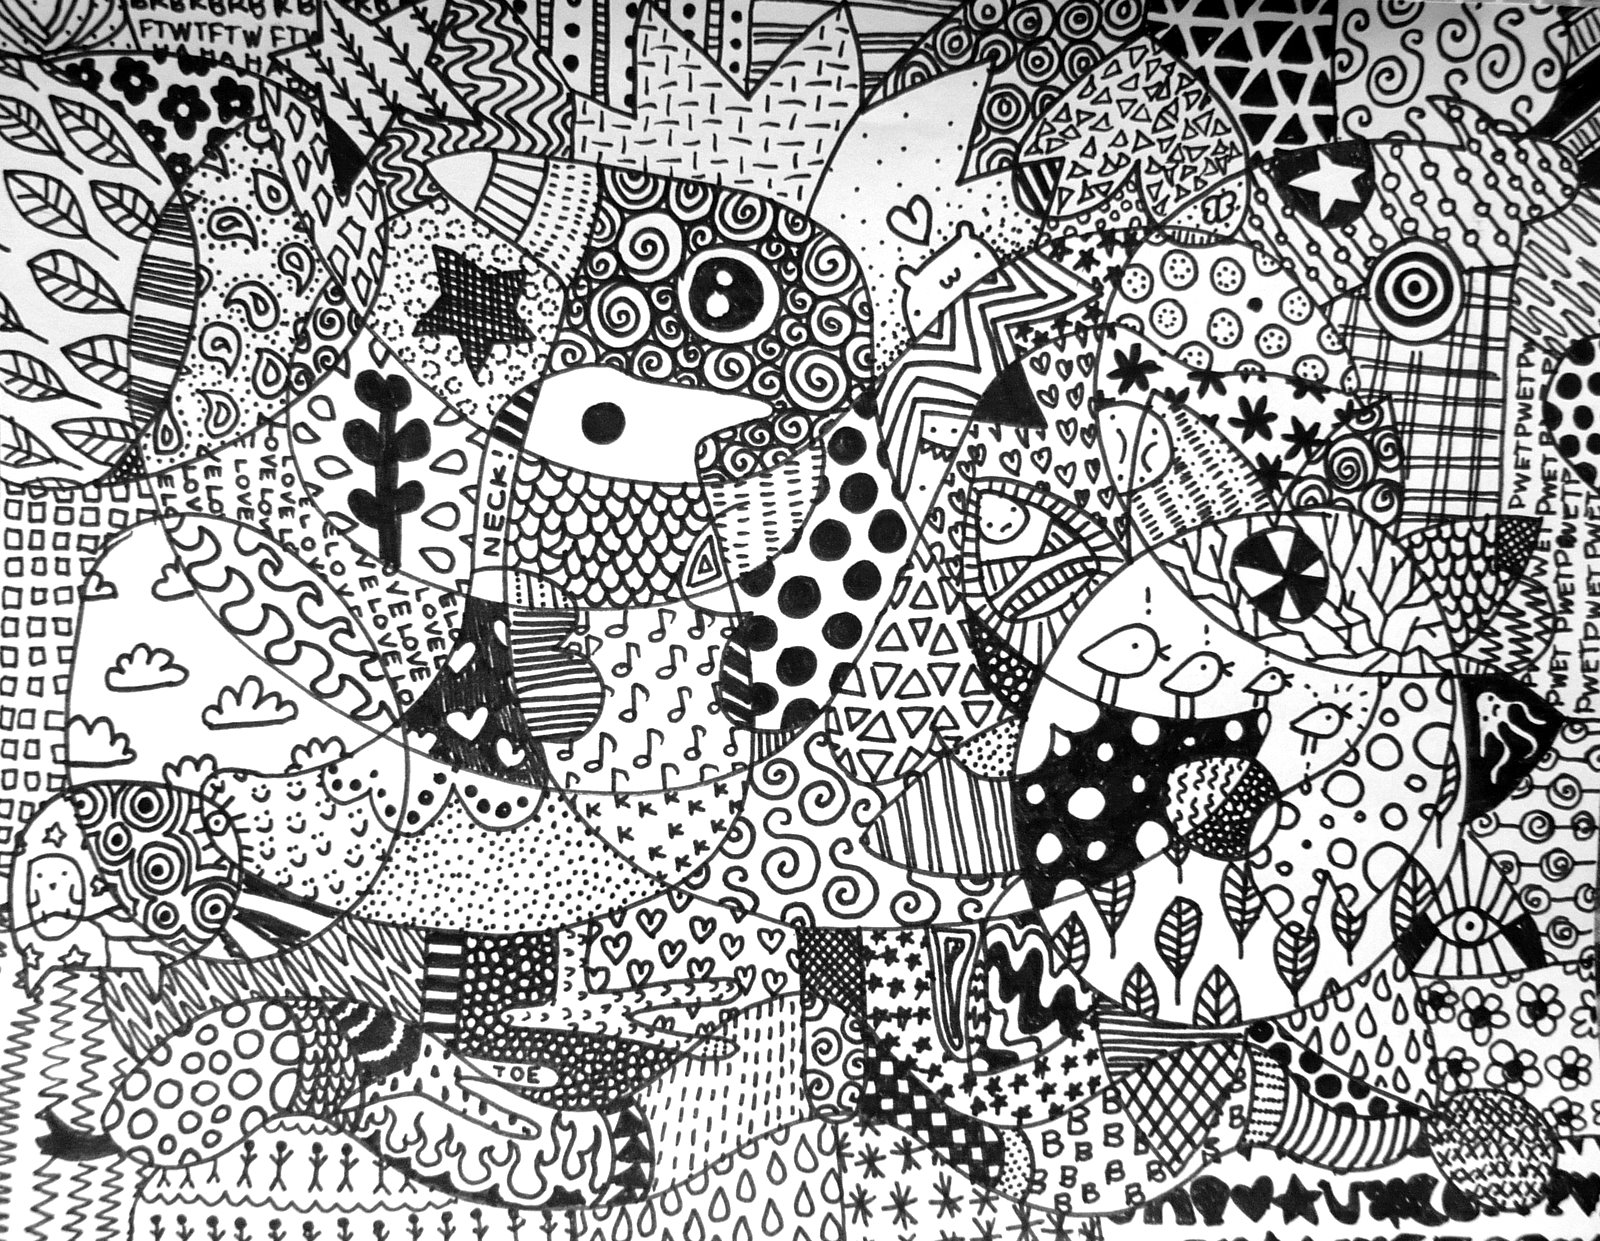 Zentangle Patterns Life as a Casual Teach...